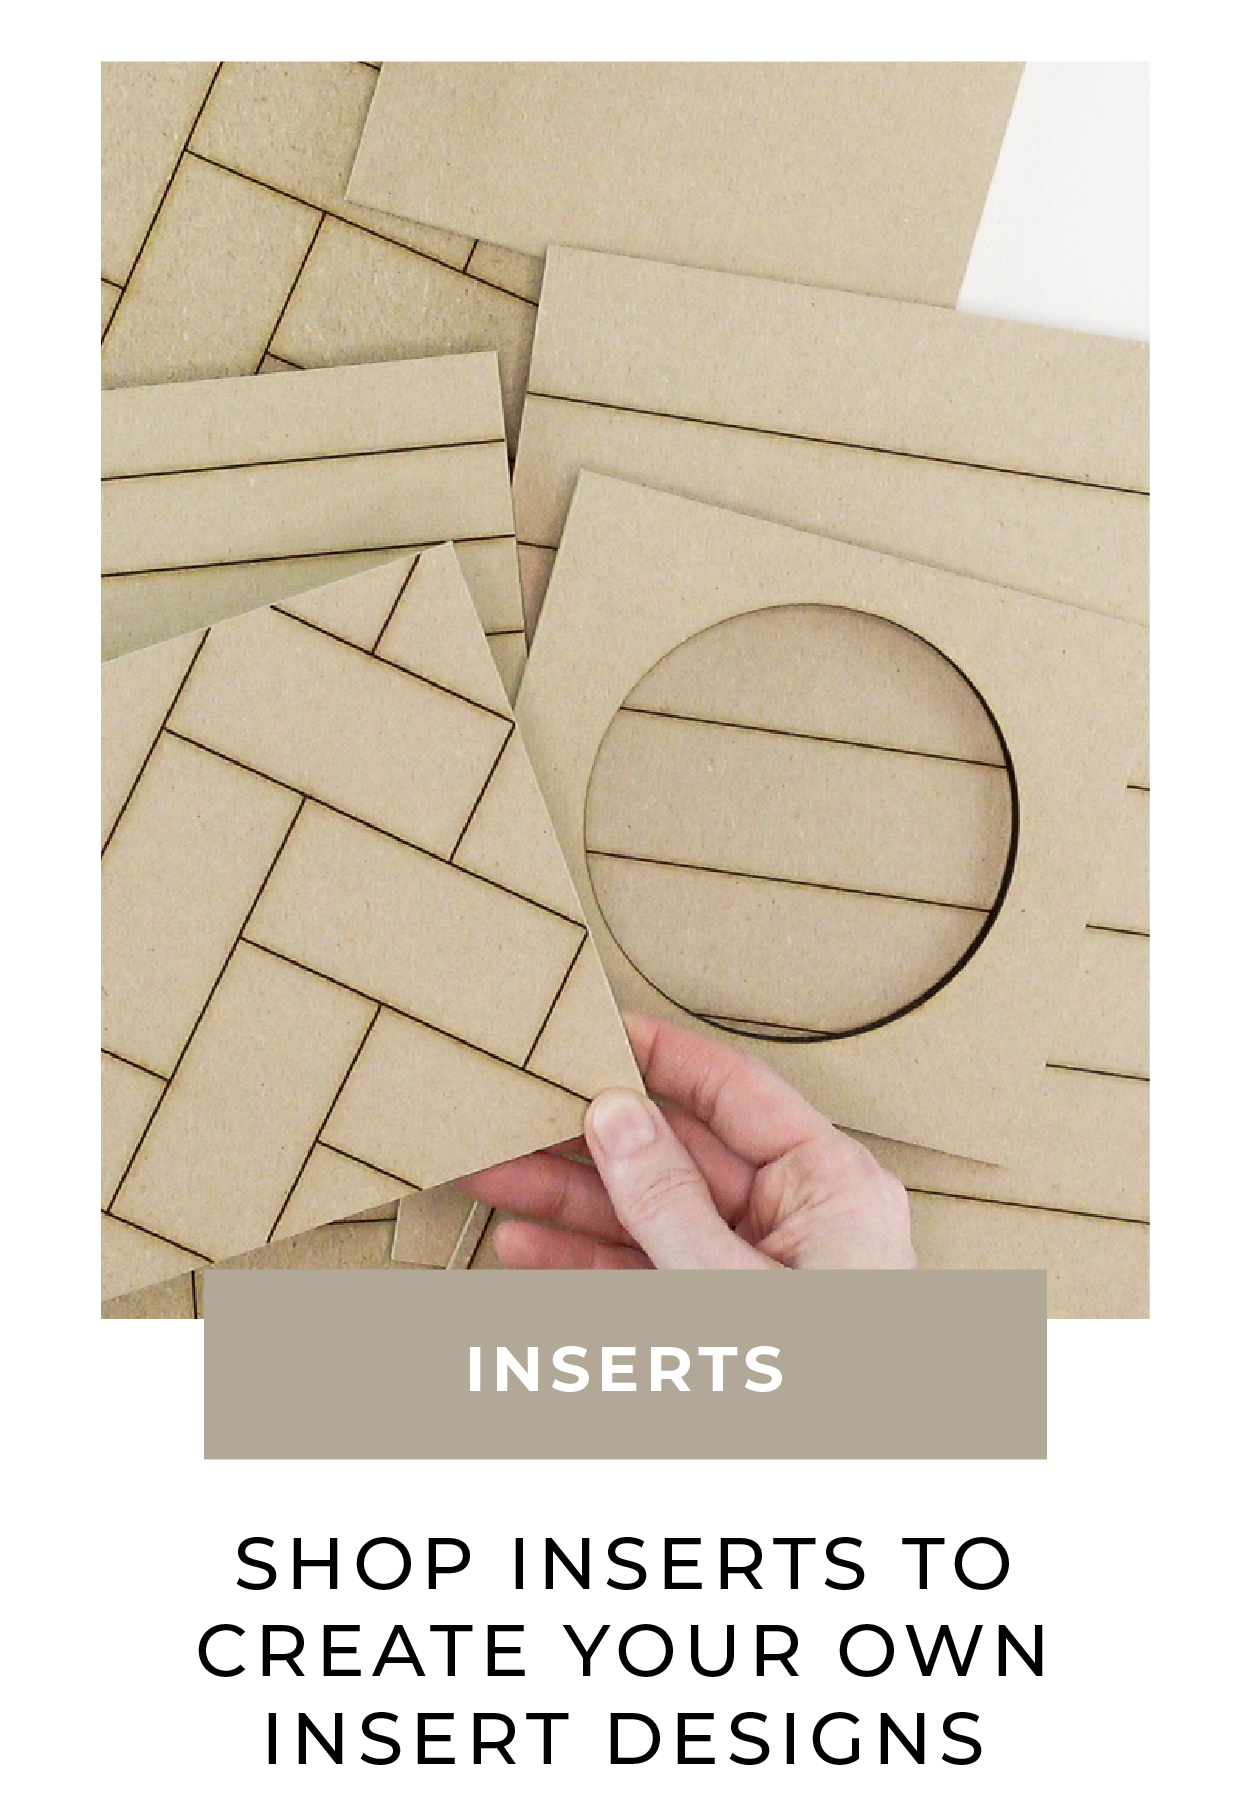 Shop inserts to create your own insert designs